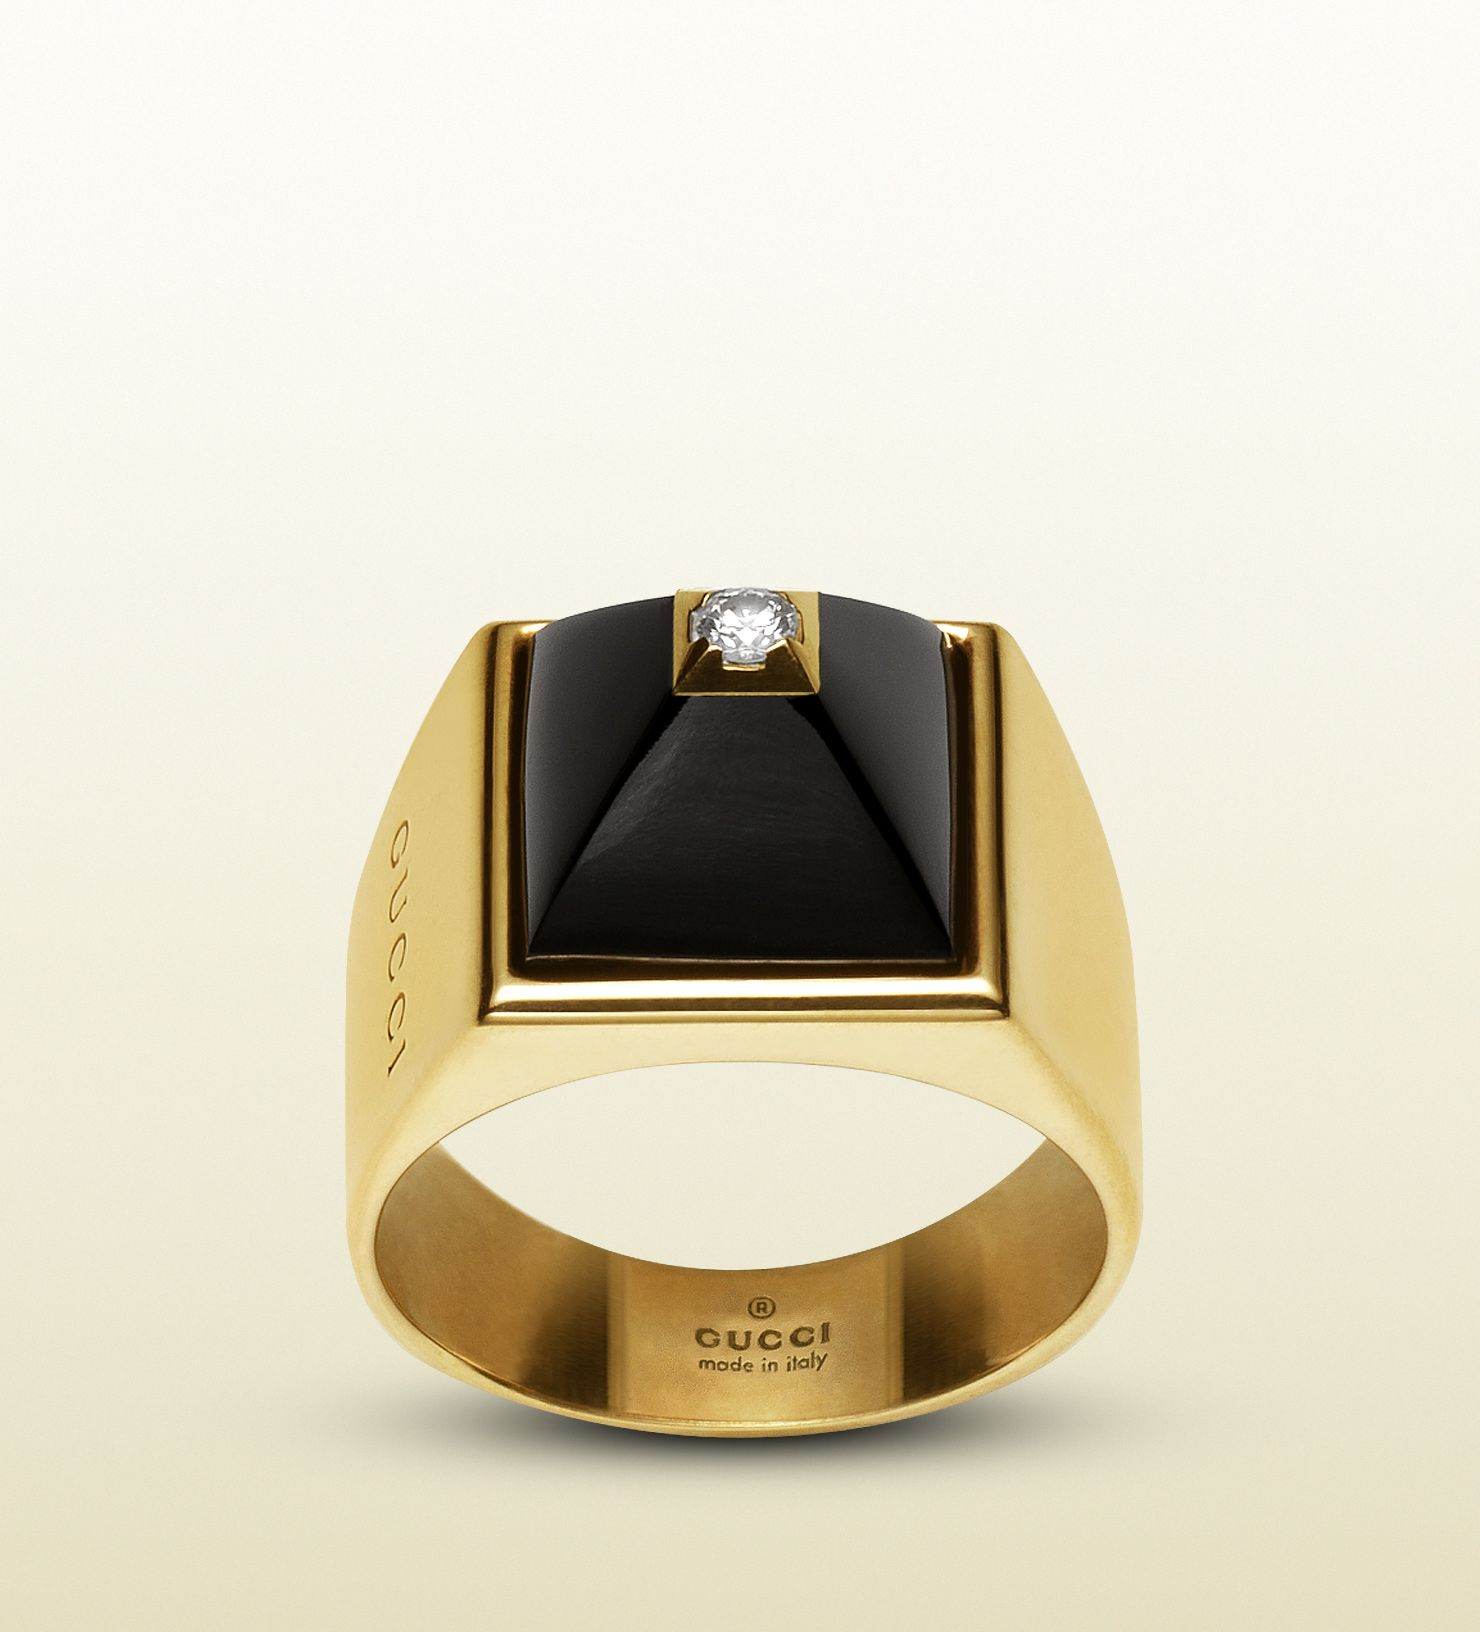 cc3131d63 gucci ring in 18k in yellow gold, diamonds and black chalcedony | My ...